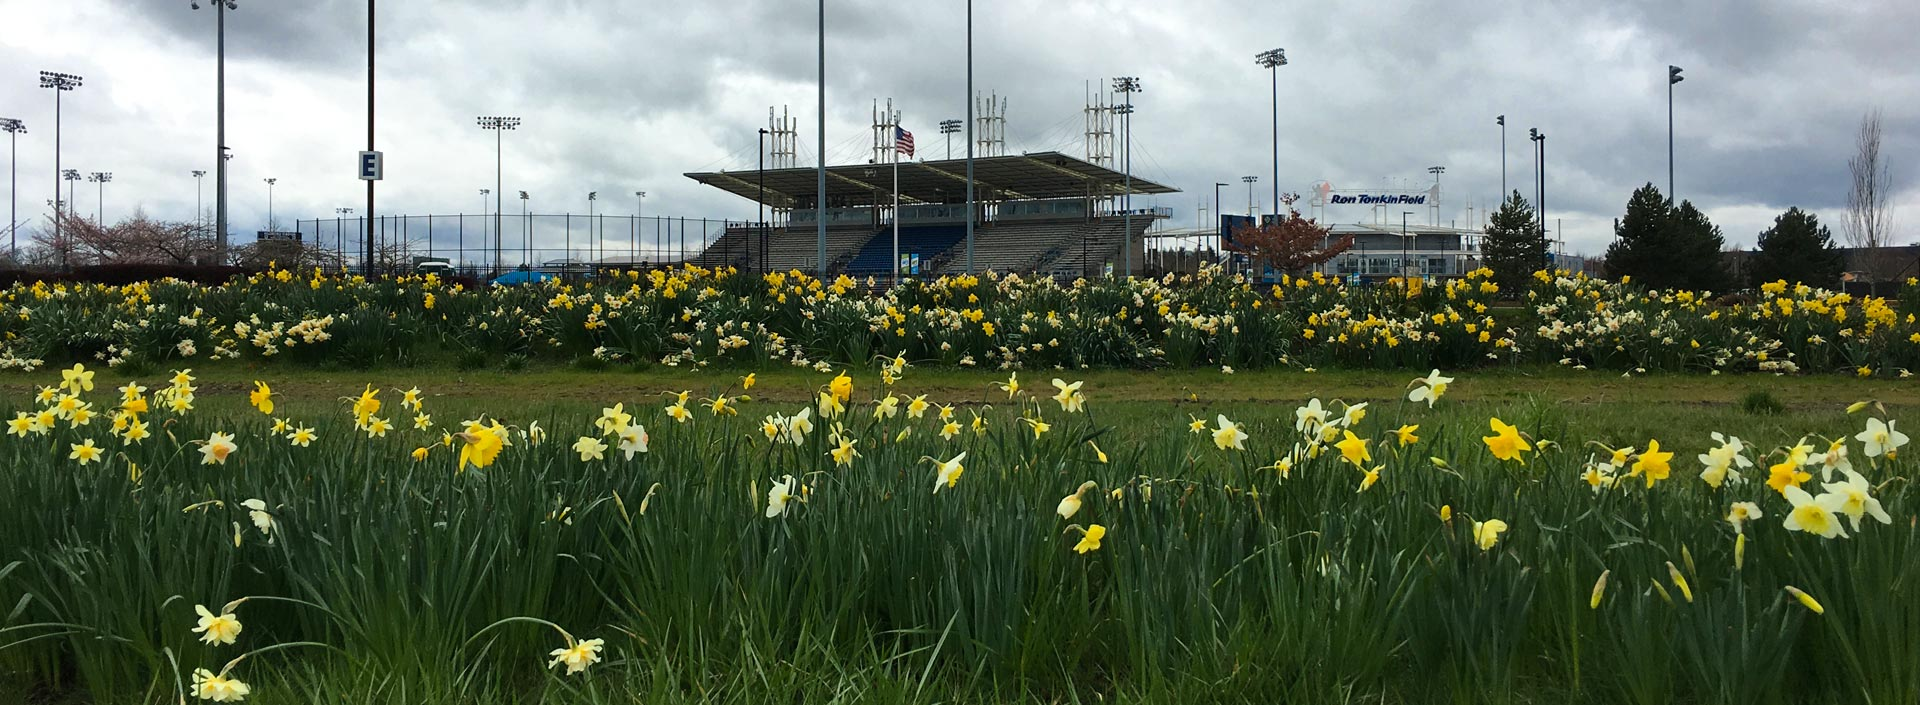 Spring flowers blooming in Hillsboro